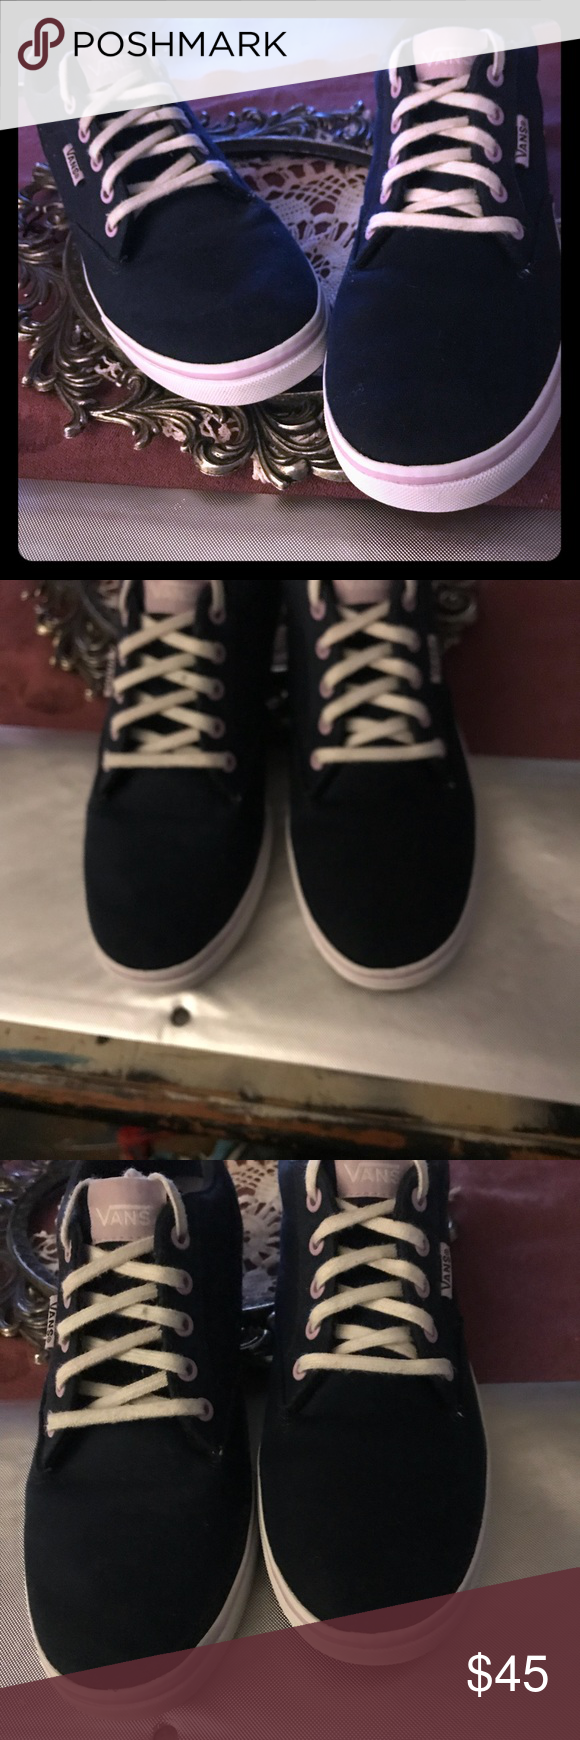 2cedcefebf6421 Vans off the wall new with out tags women Vans pink label tongue and side  tag on a canvas dark blueish greyish lilic color never worn excellent  condition ...